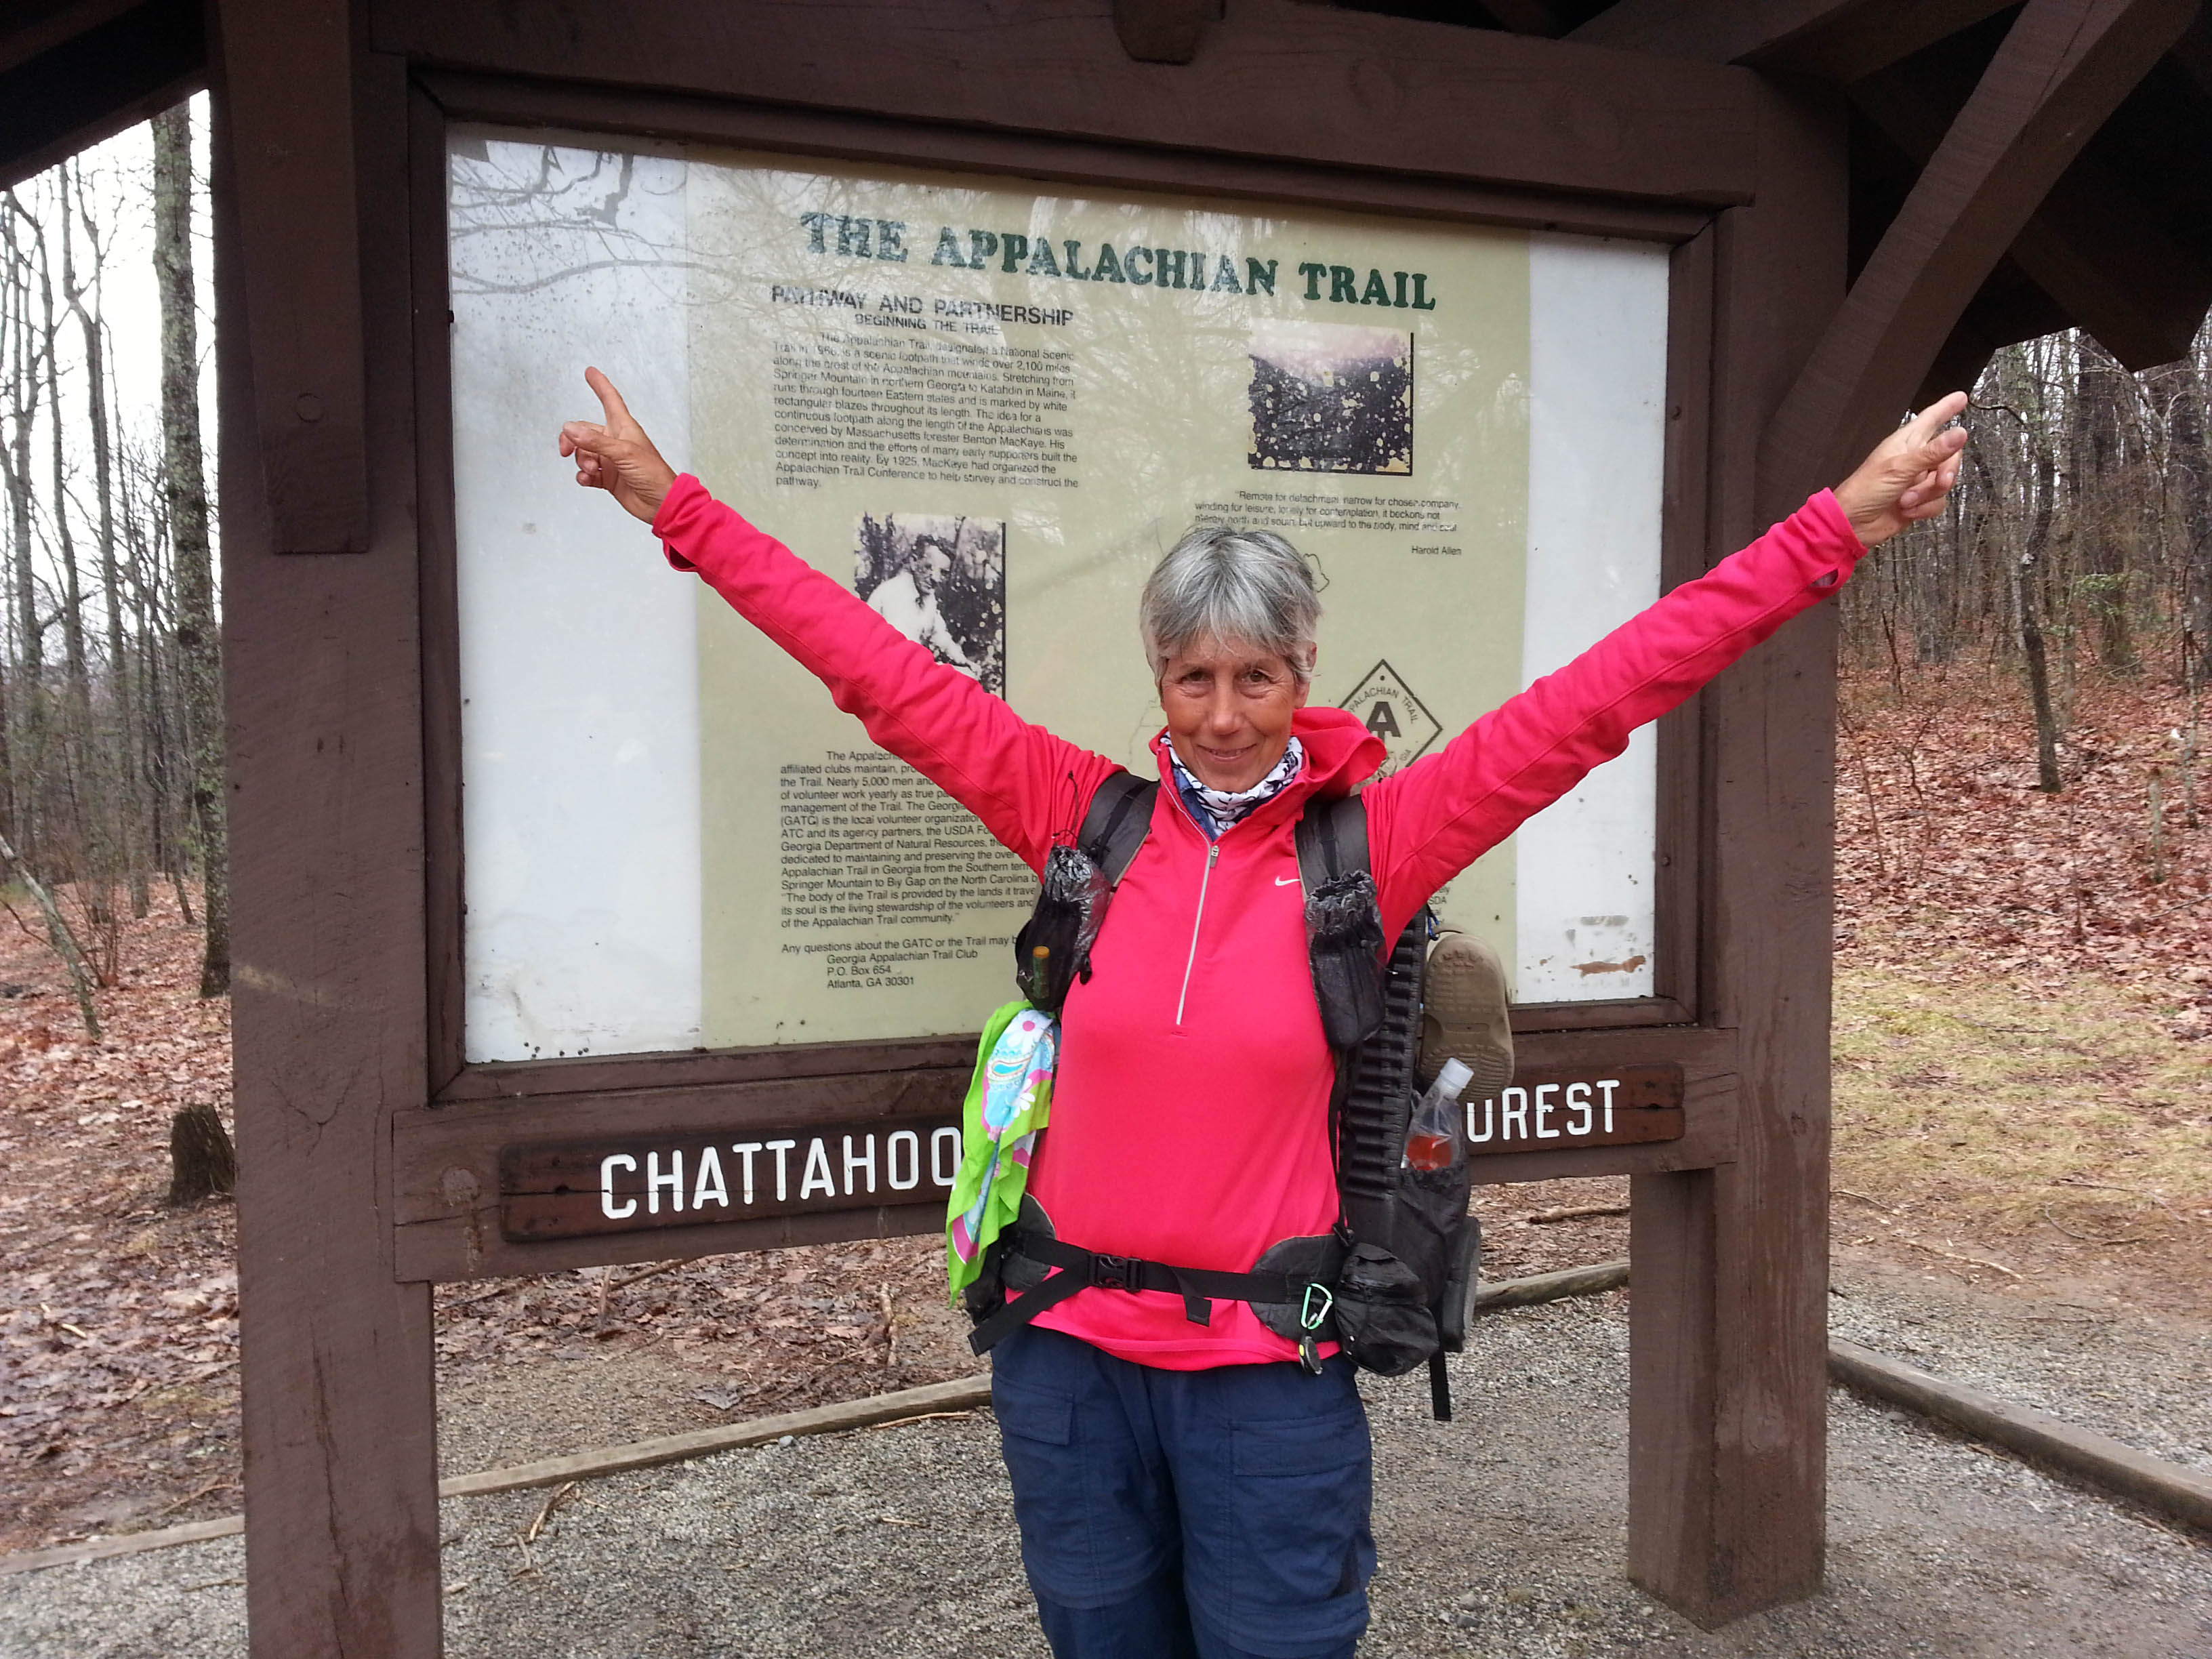 Sylvania Twp. woman, 63, realizes dream of hiking entire